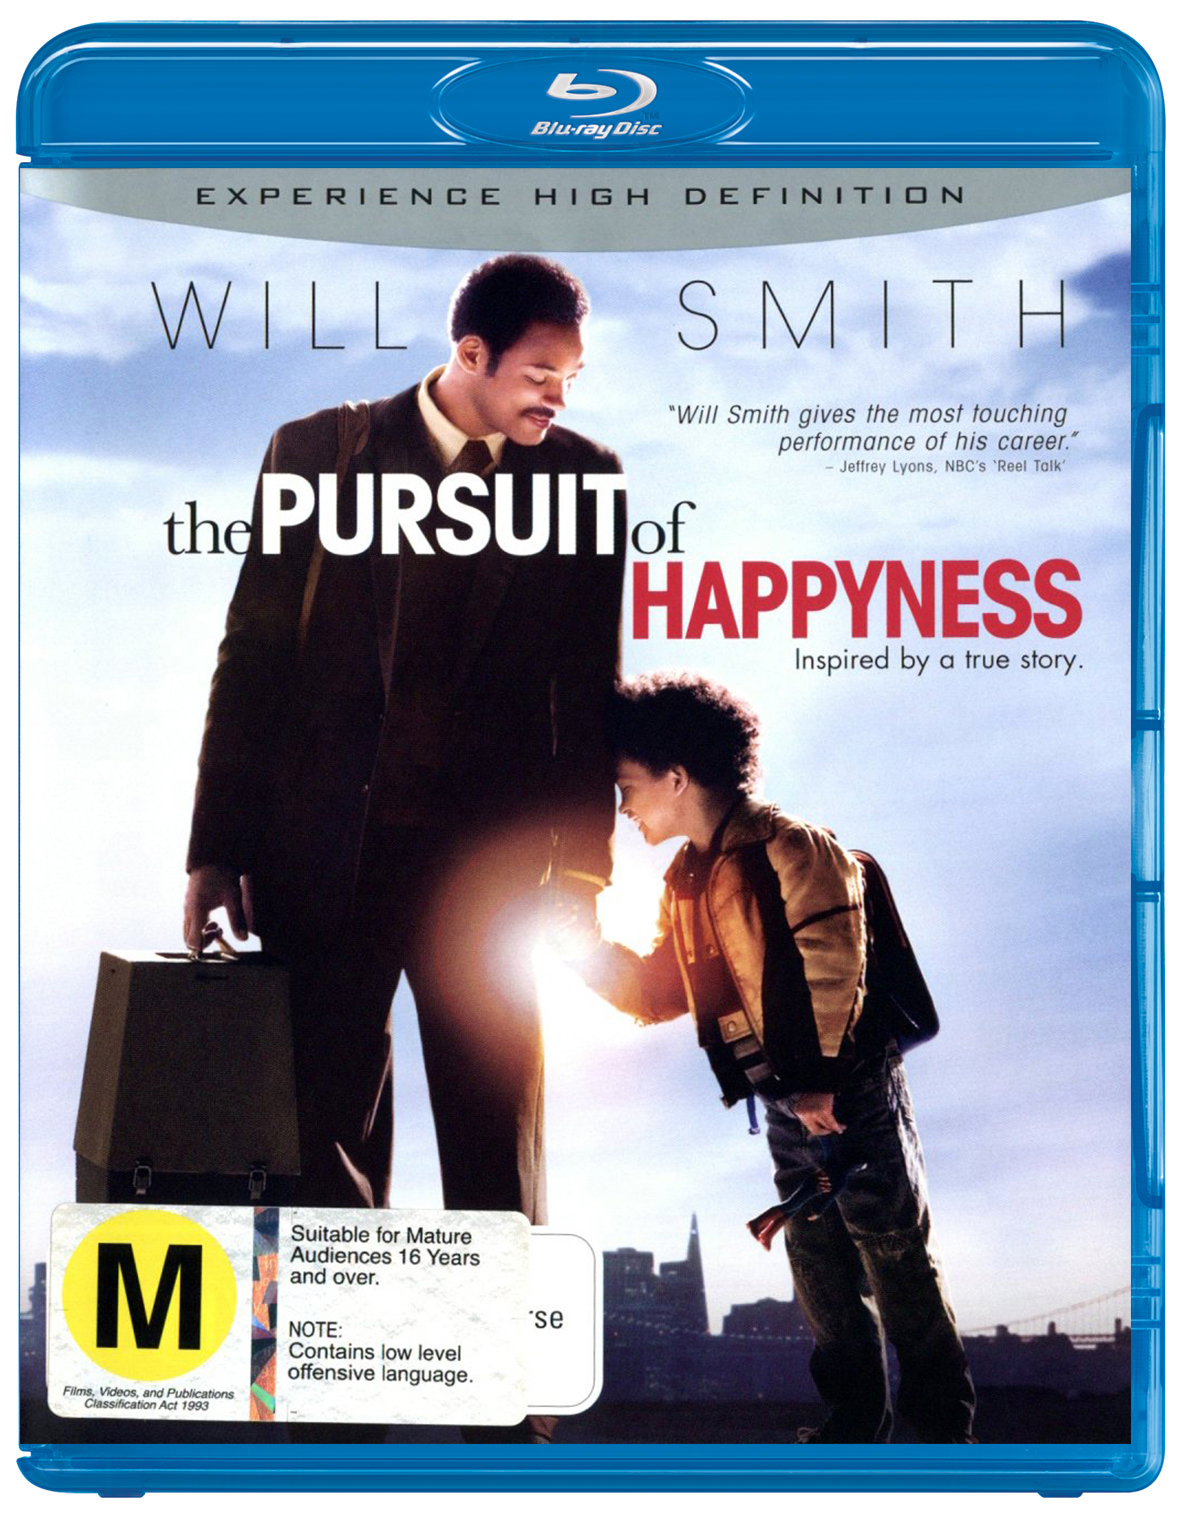 The Pursuit Of Happyness on Blu-ray image